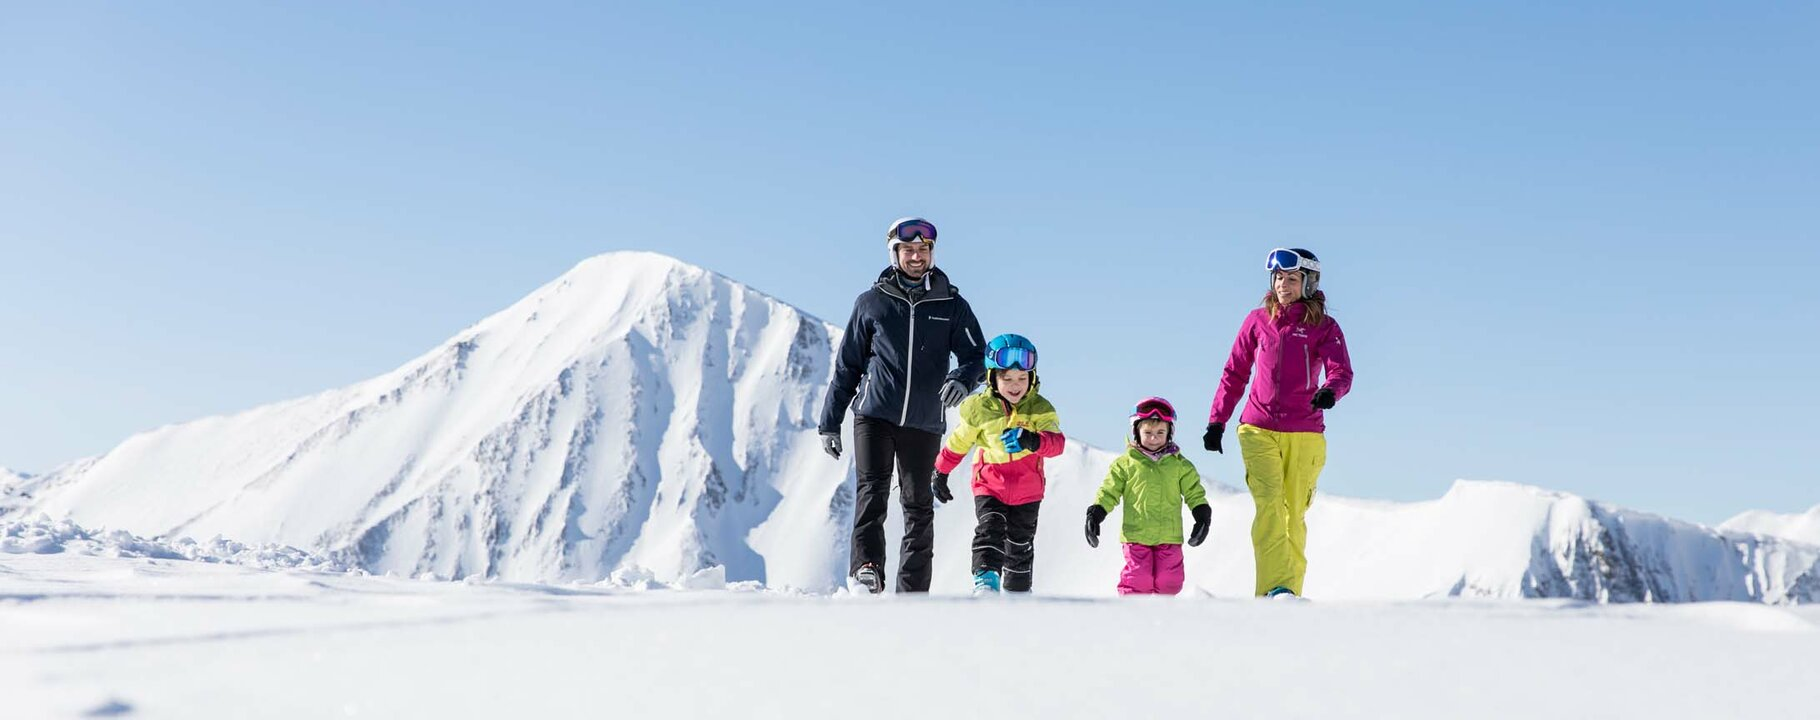 Fun during your family holiday in Serfaus-Fiss-Ladis | © Serfaus-Fiss-Ladis Marketing GmbH | danielzangerl.com